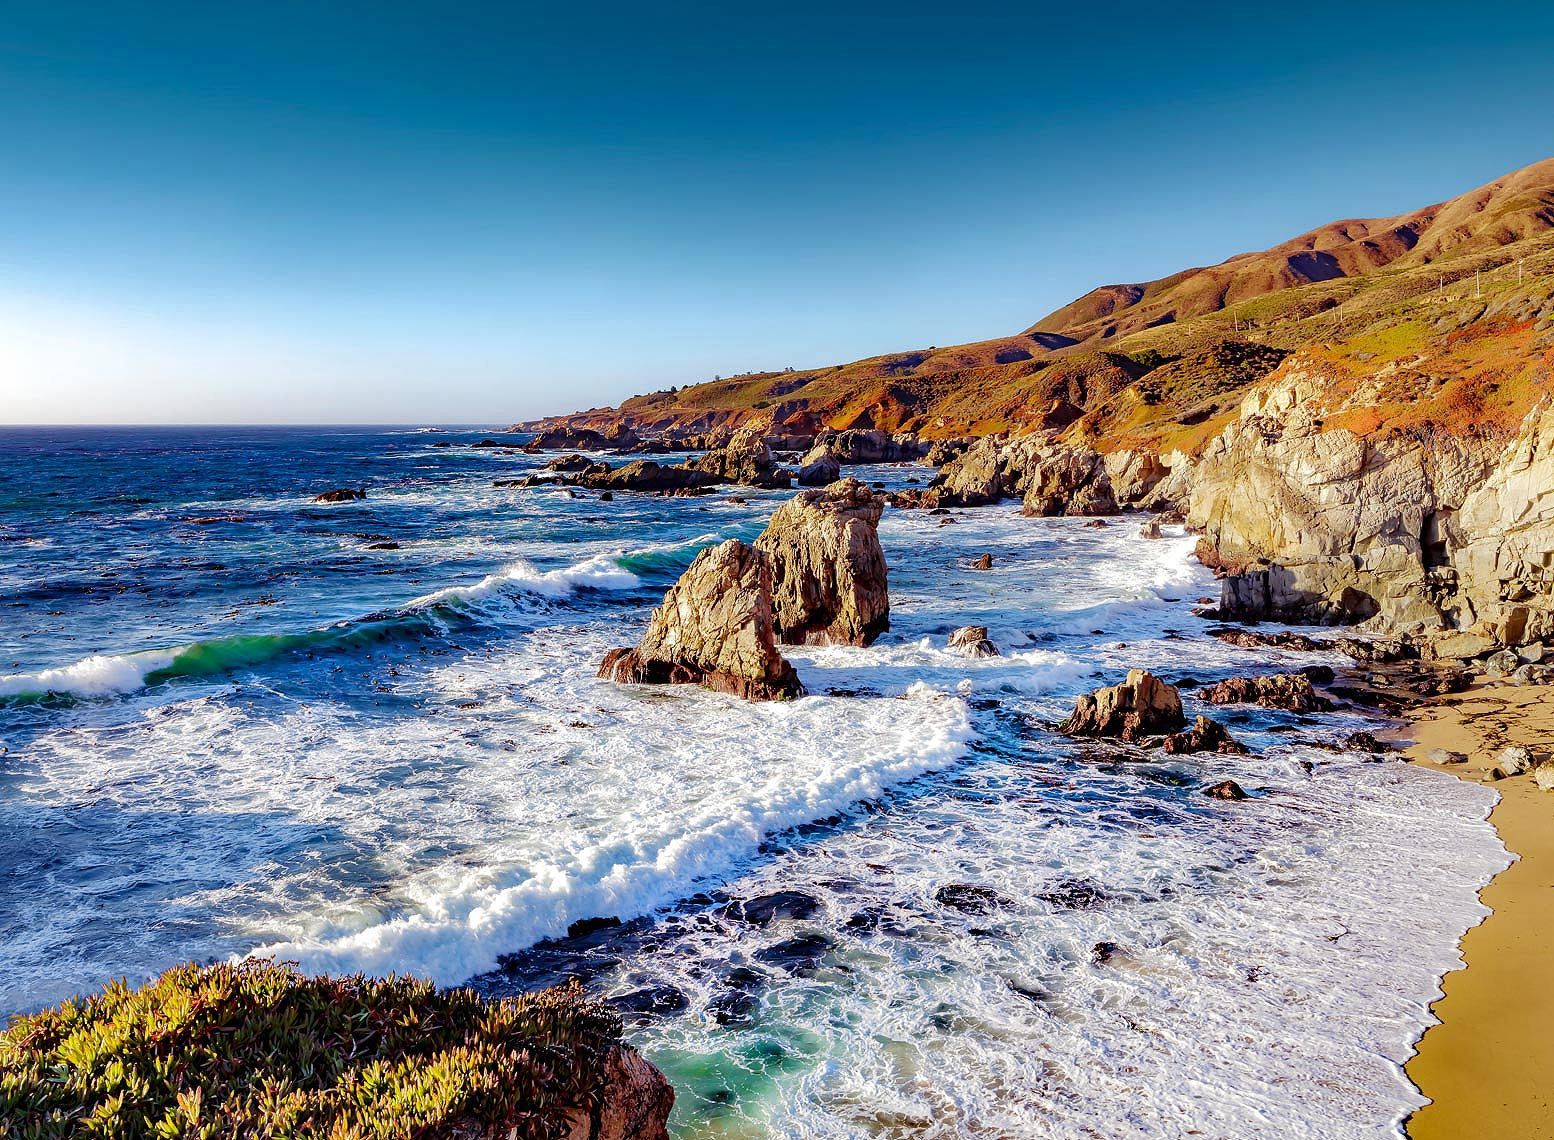 Monterey, California, USA - coastline